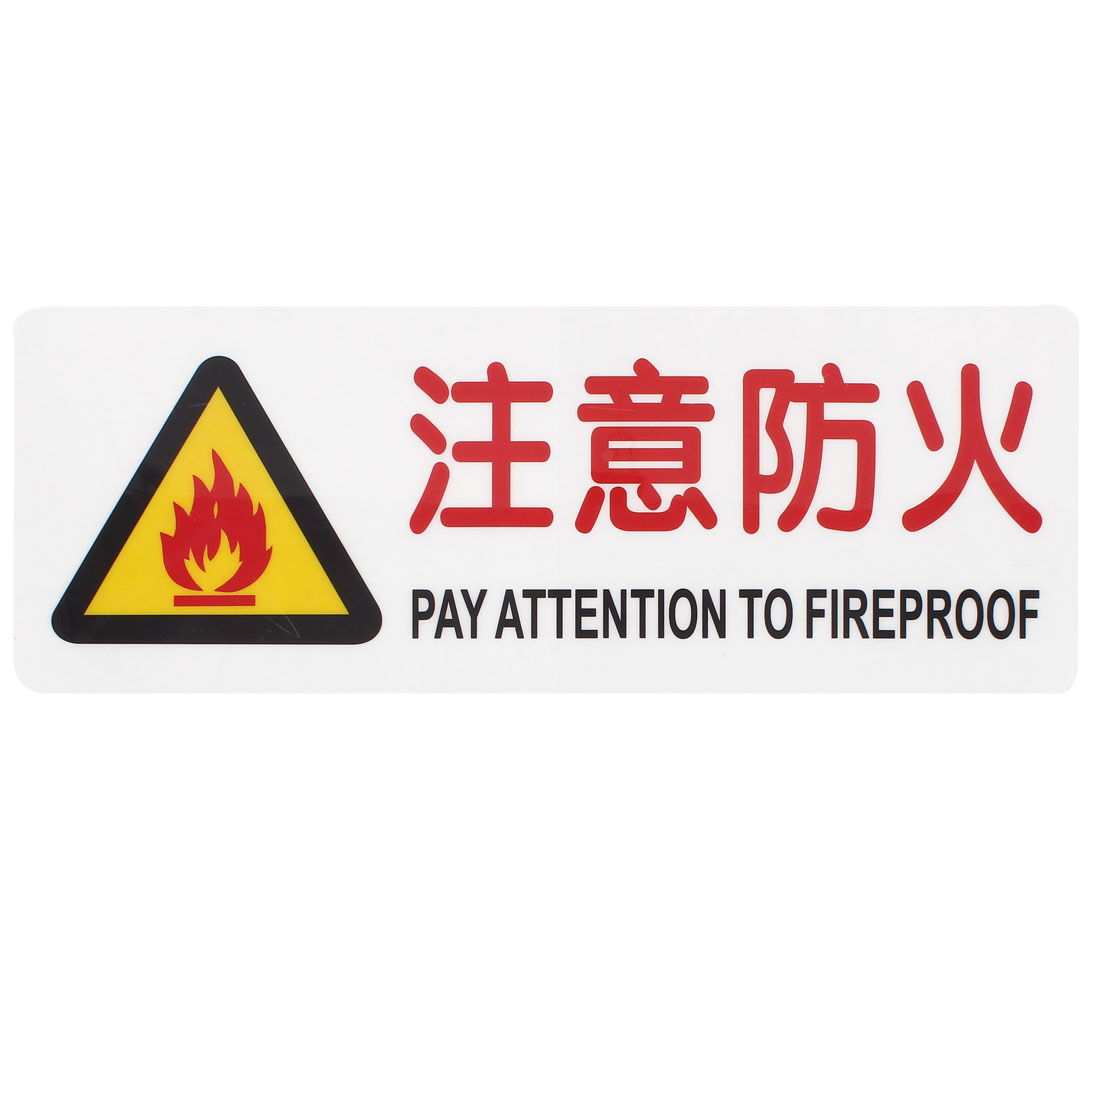 Plastic Rectangular Shape Pay Attention To Fireproof Wall Window Sign Warning Caution Safty Sticker Decal